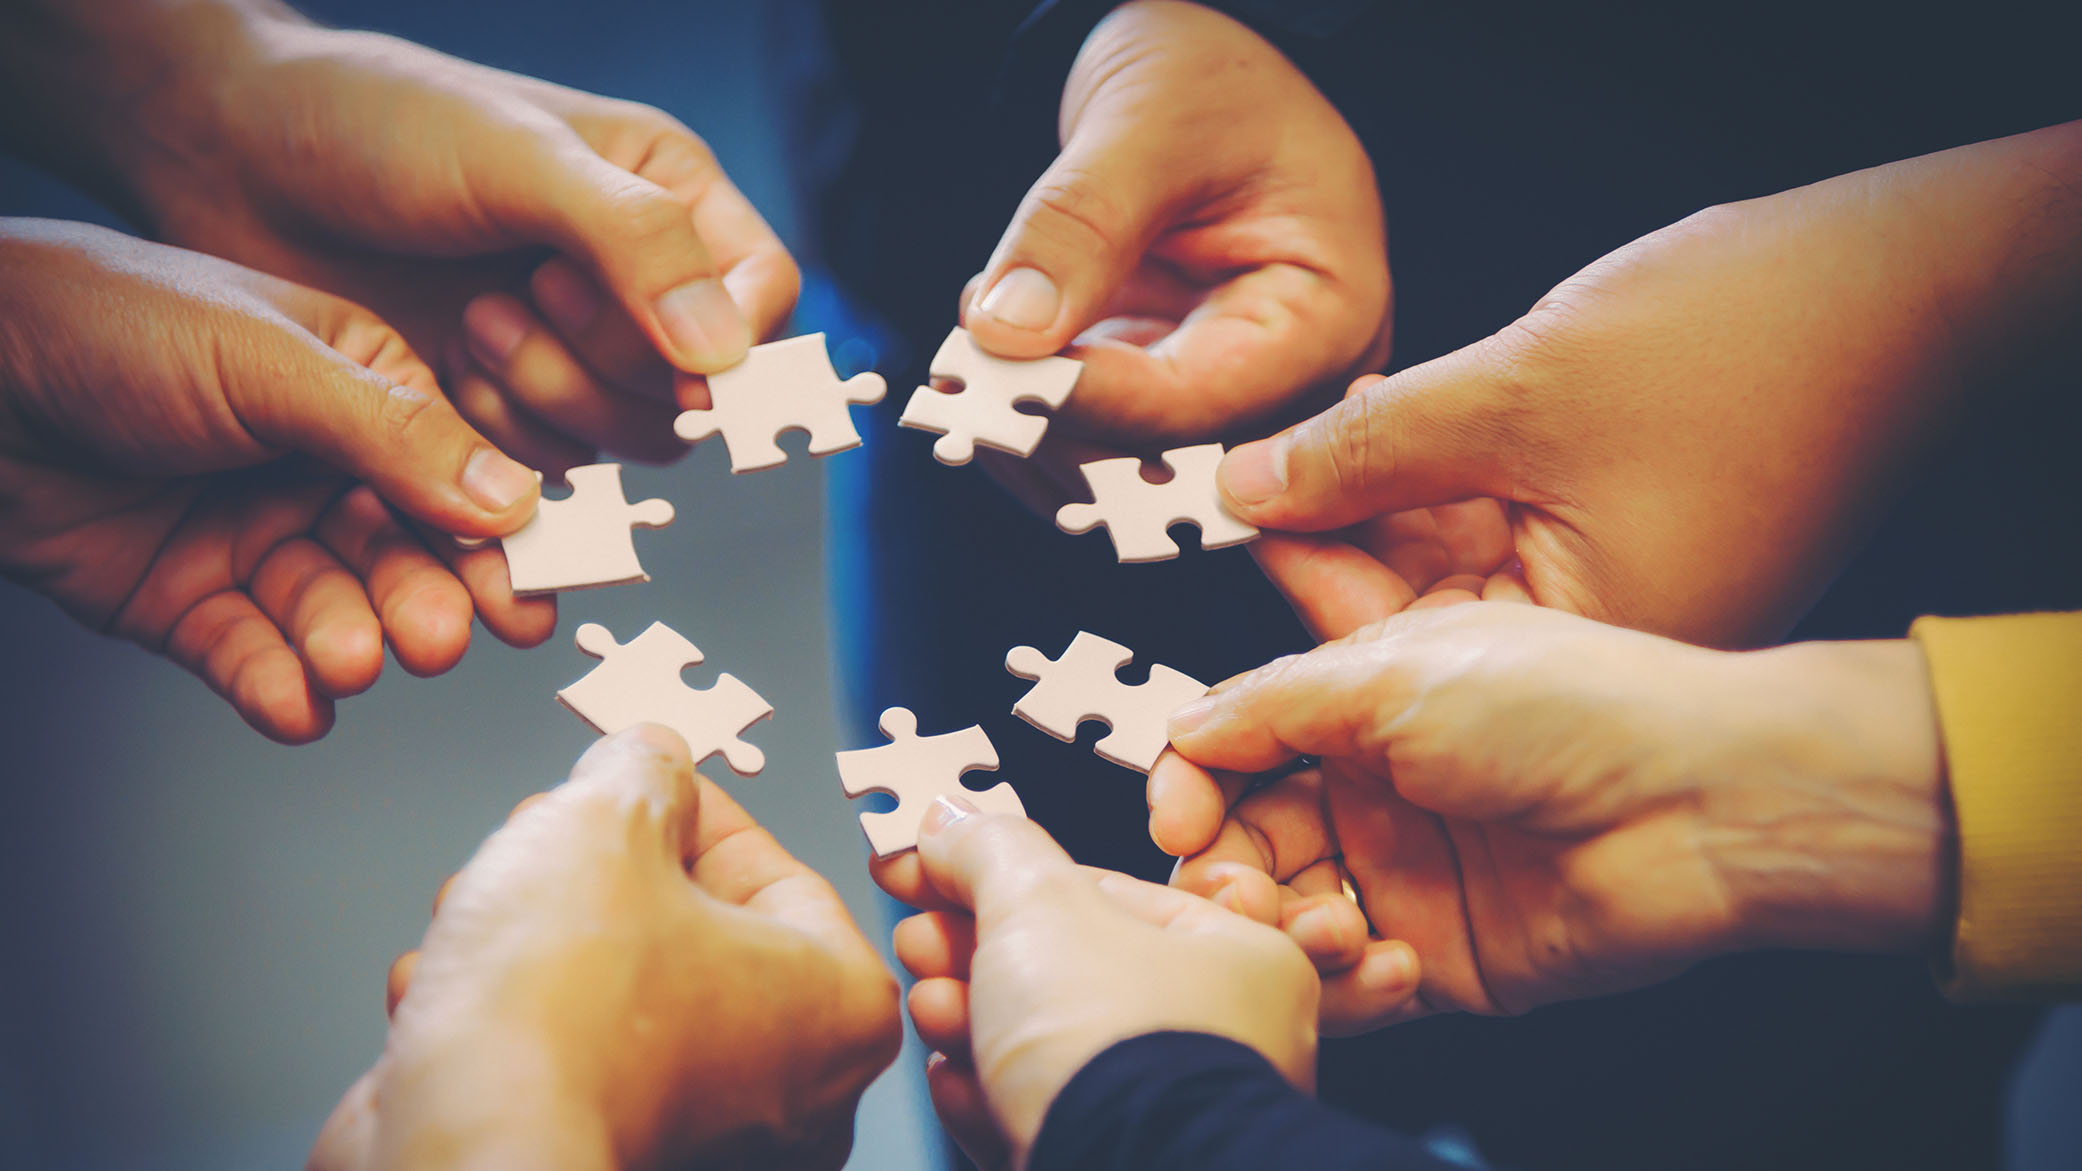 hands holding jigsaw pieces